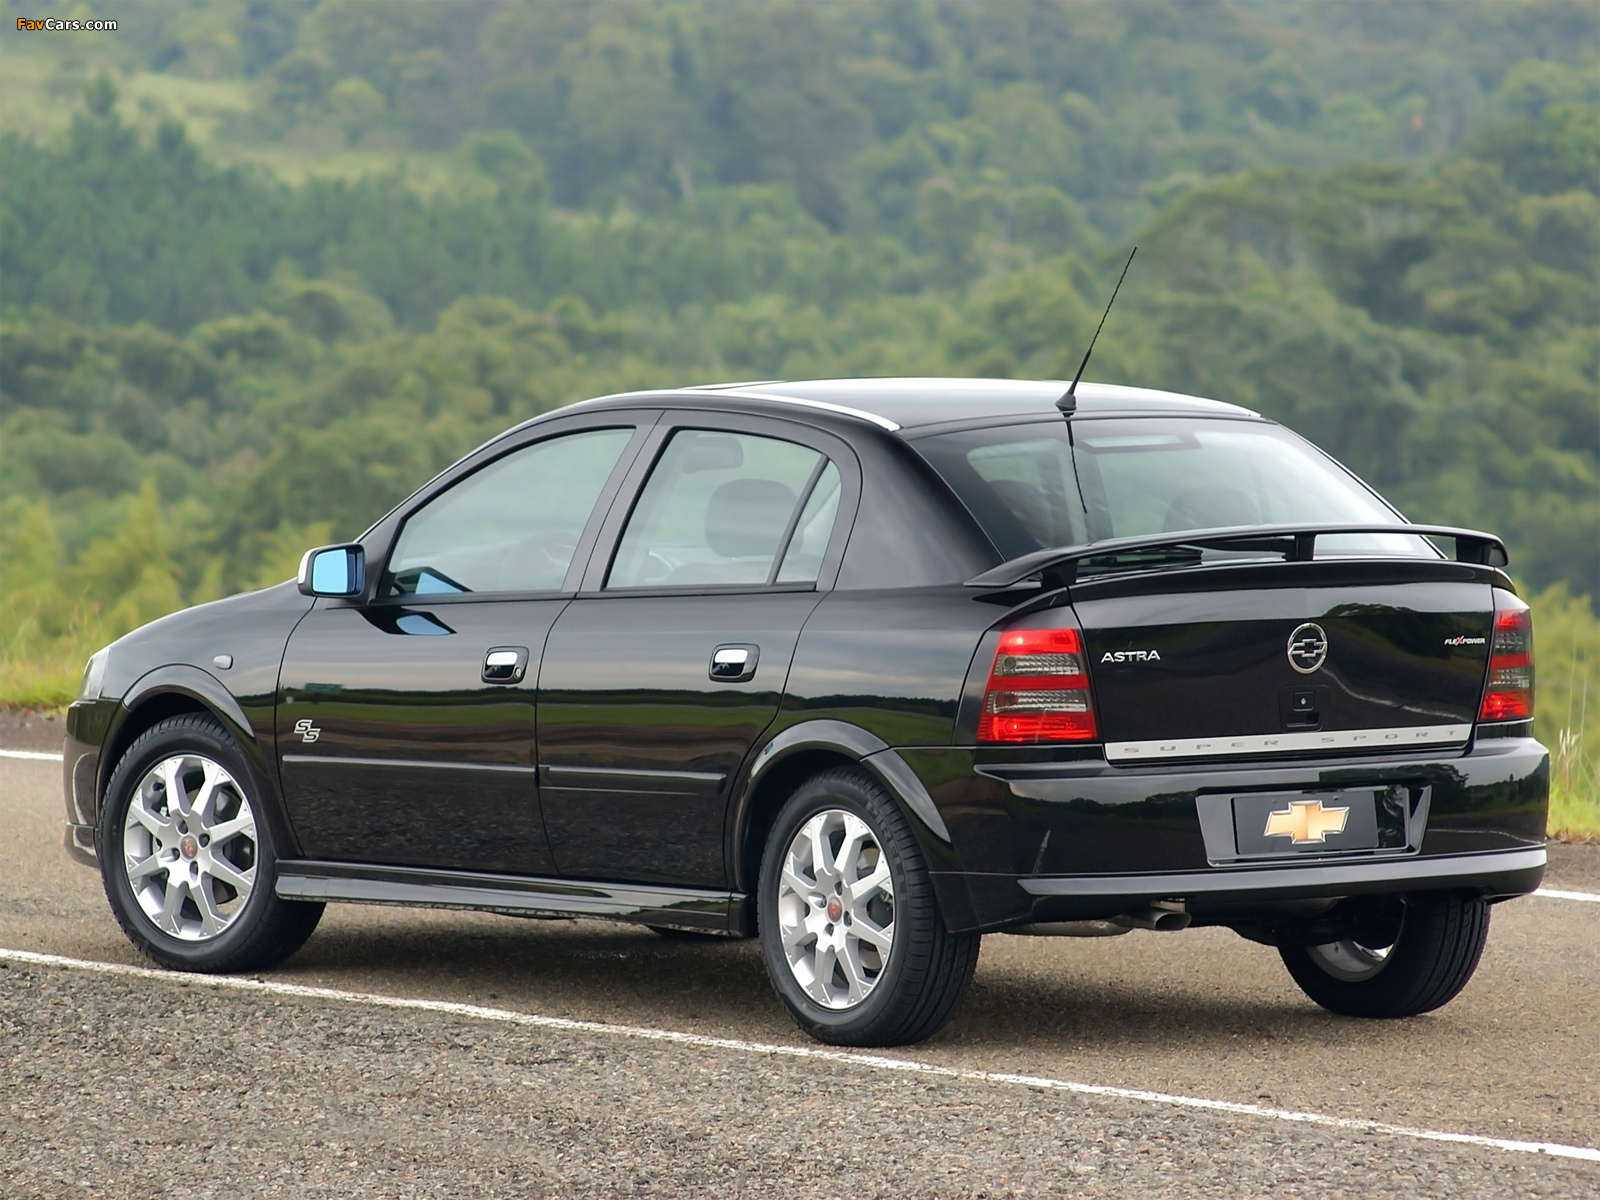 chevrolet astra pictures #10